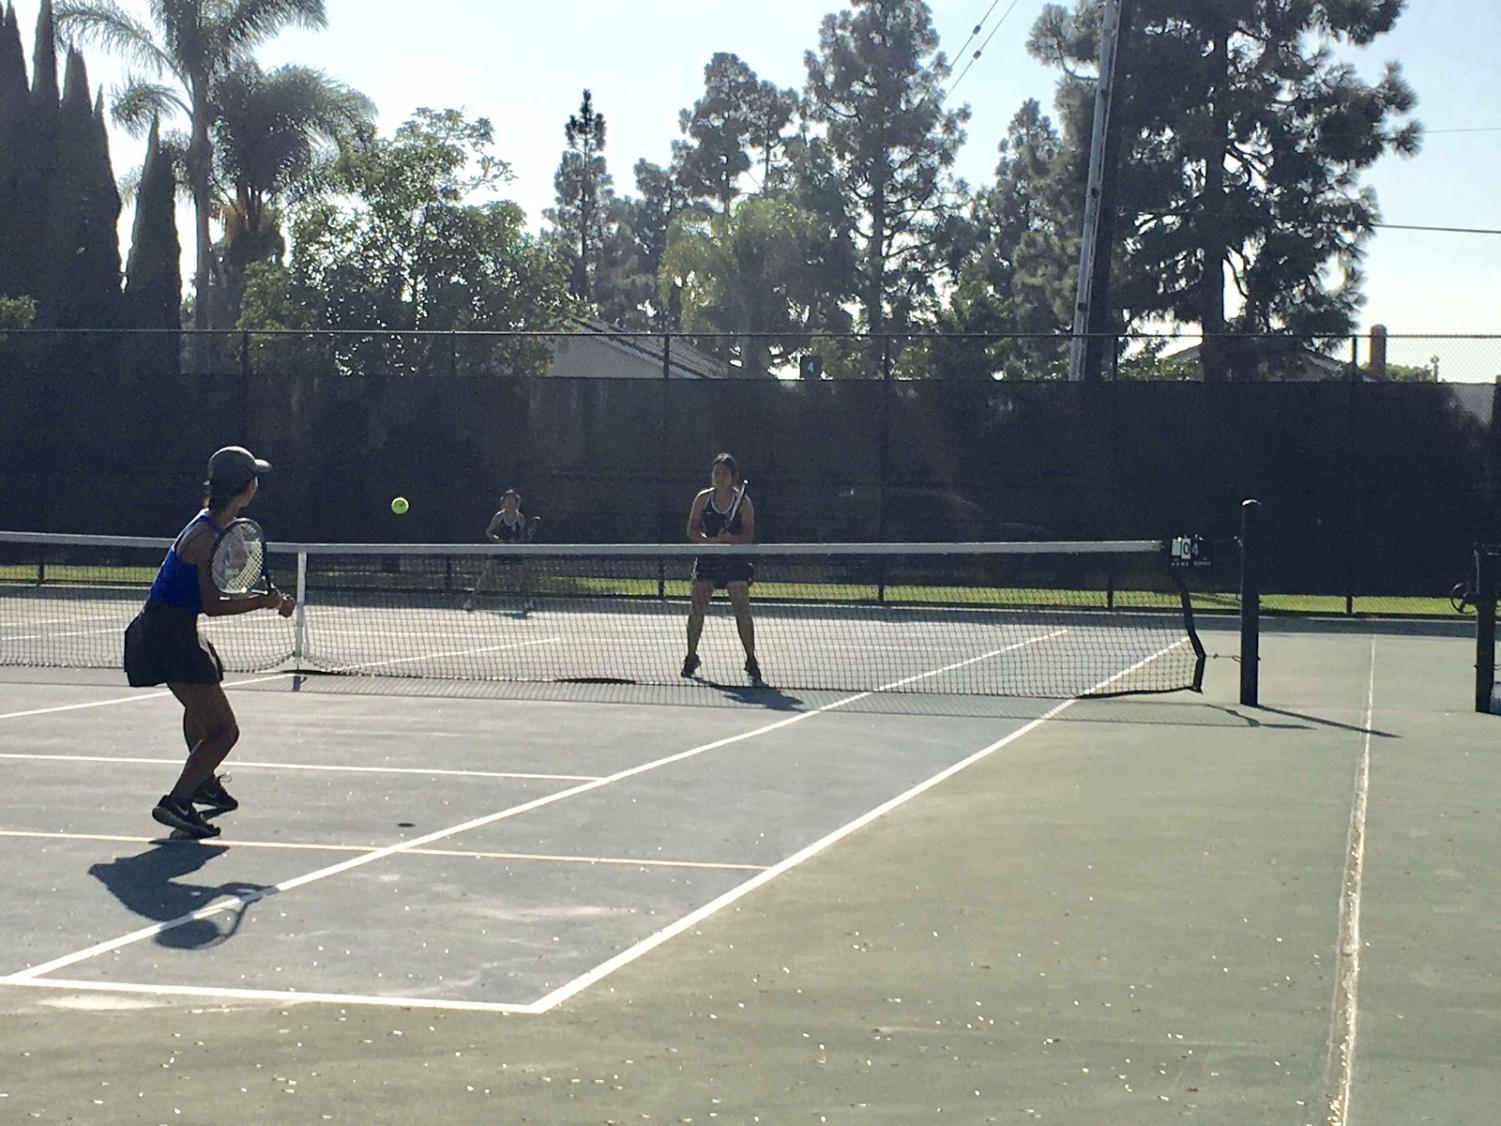 From left to right, Western High School athlete plays against Samantha Tapia and Donna Tran at the McFadden Middle School tennis court on Tuesday, Sept. 25, 2018.